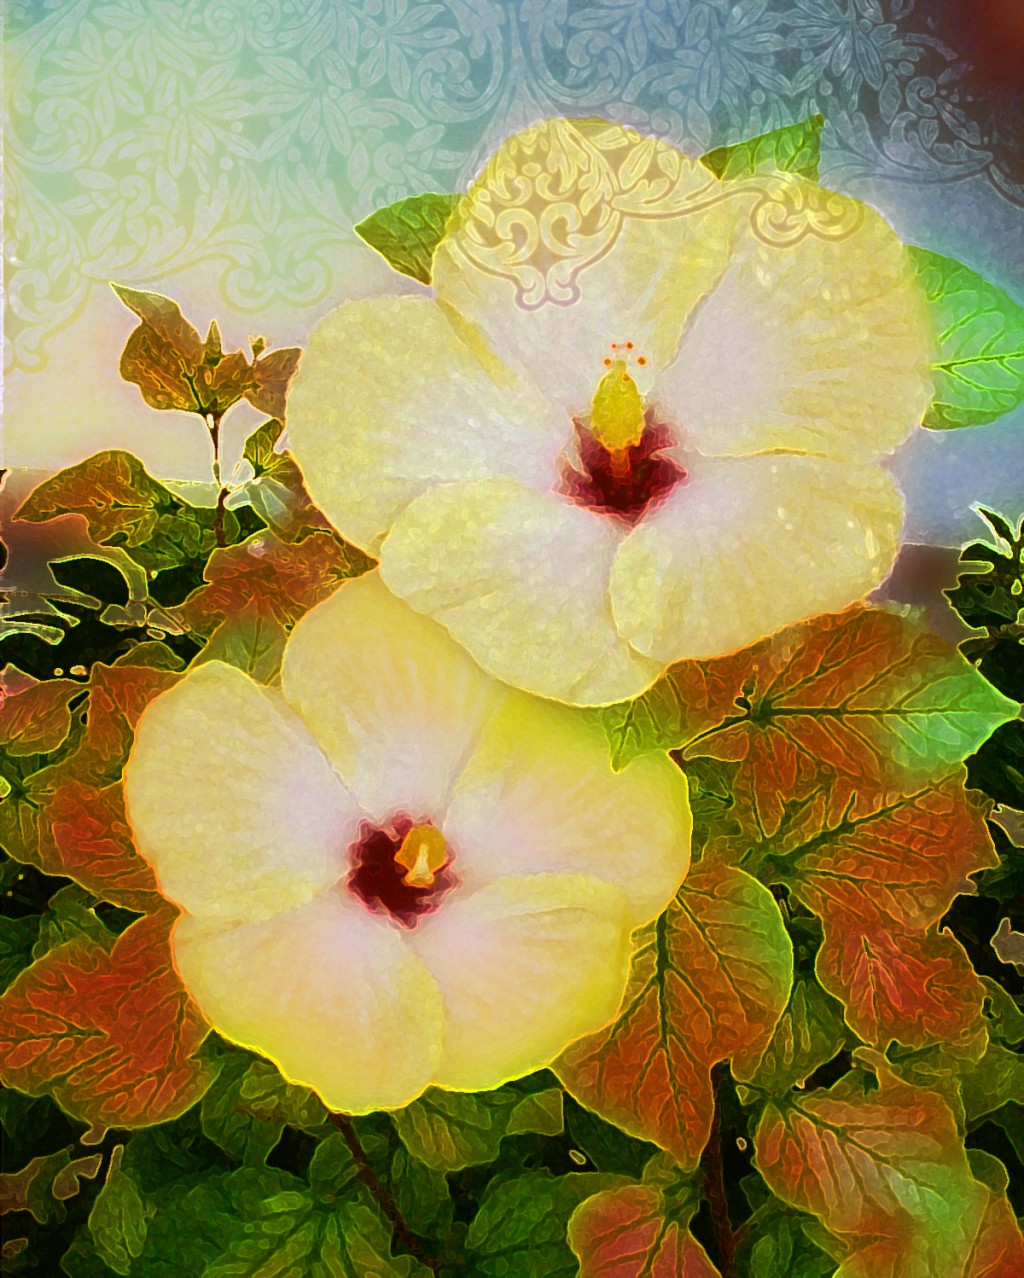 The Yellow Hibiscus ficial State Flower of Hawaii